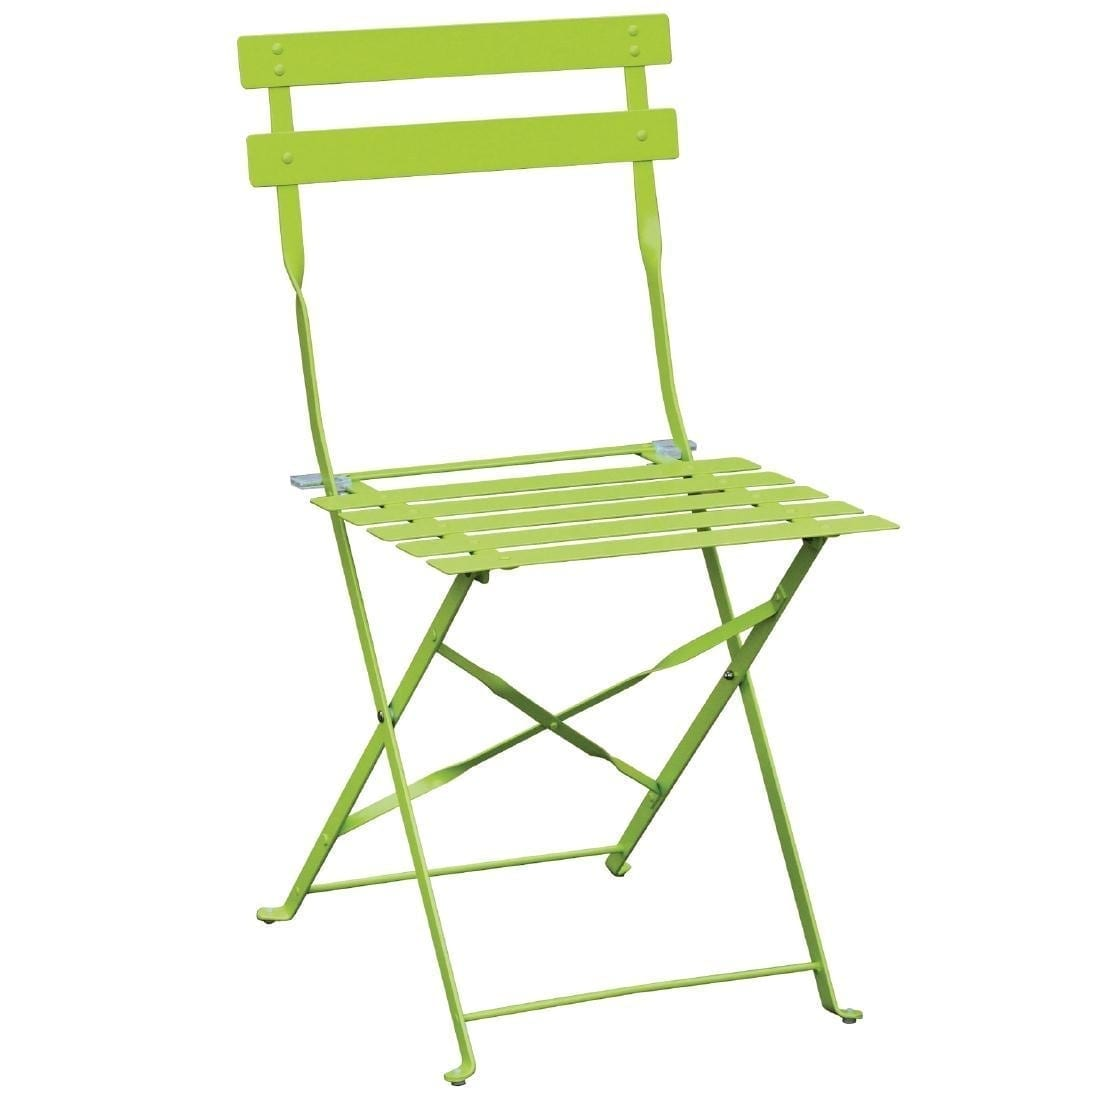 Lime Green Chairs Bolero Lime Green Pavement Style Steel Chairs Pack 2